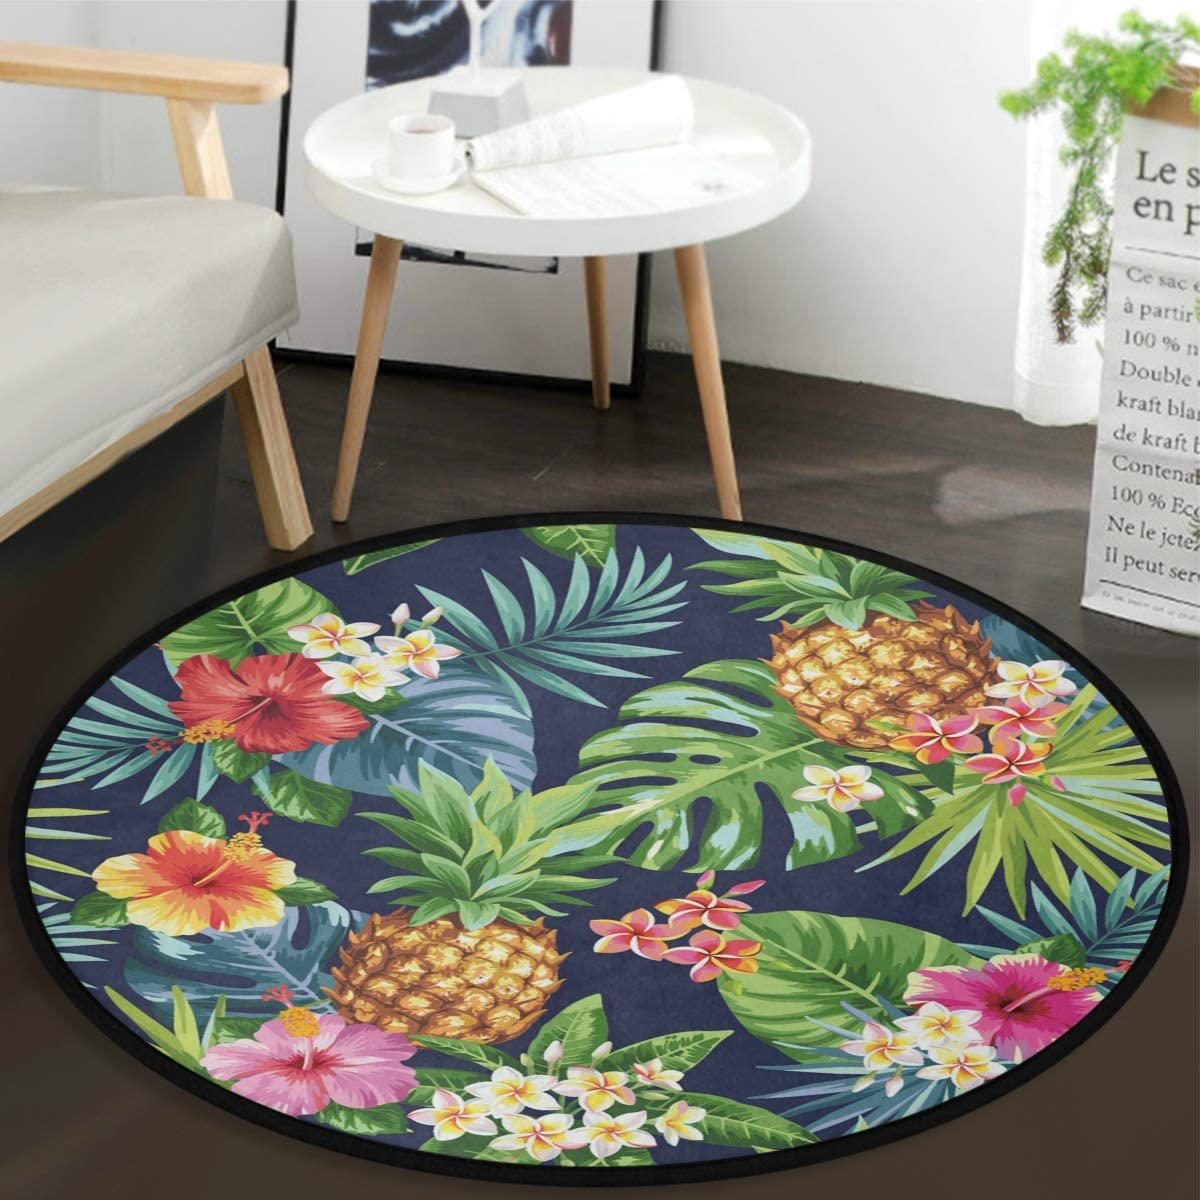 Vdsrup Tropical Sunflower Pineapple Doormat Palm Tree Leaves Floor Mats Round Washable Non-Slip Entryway Area Rug